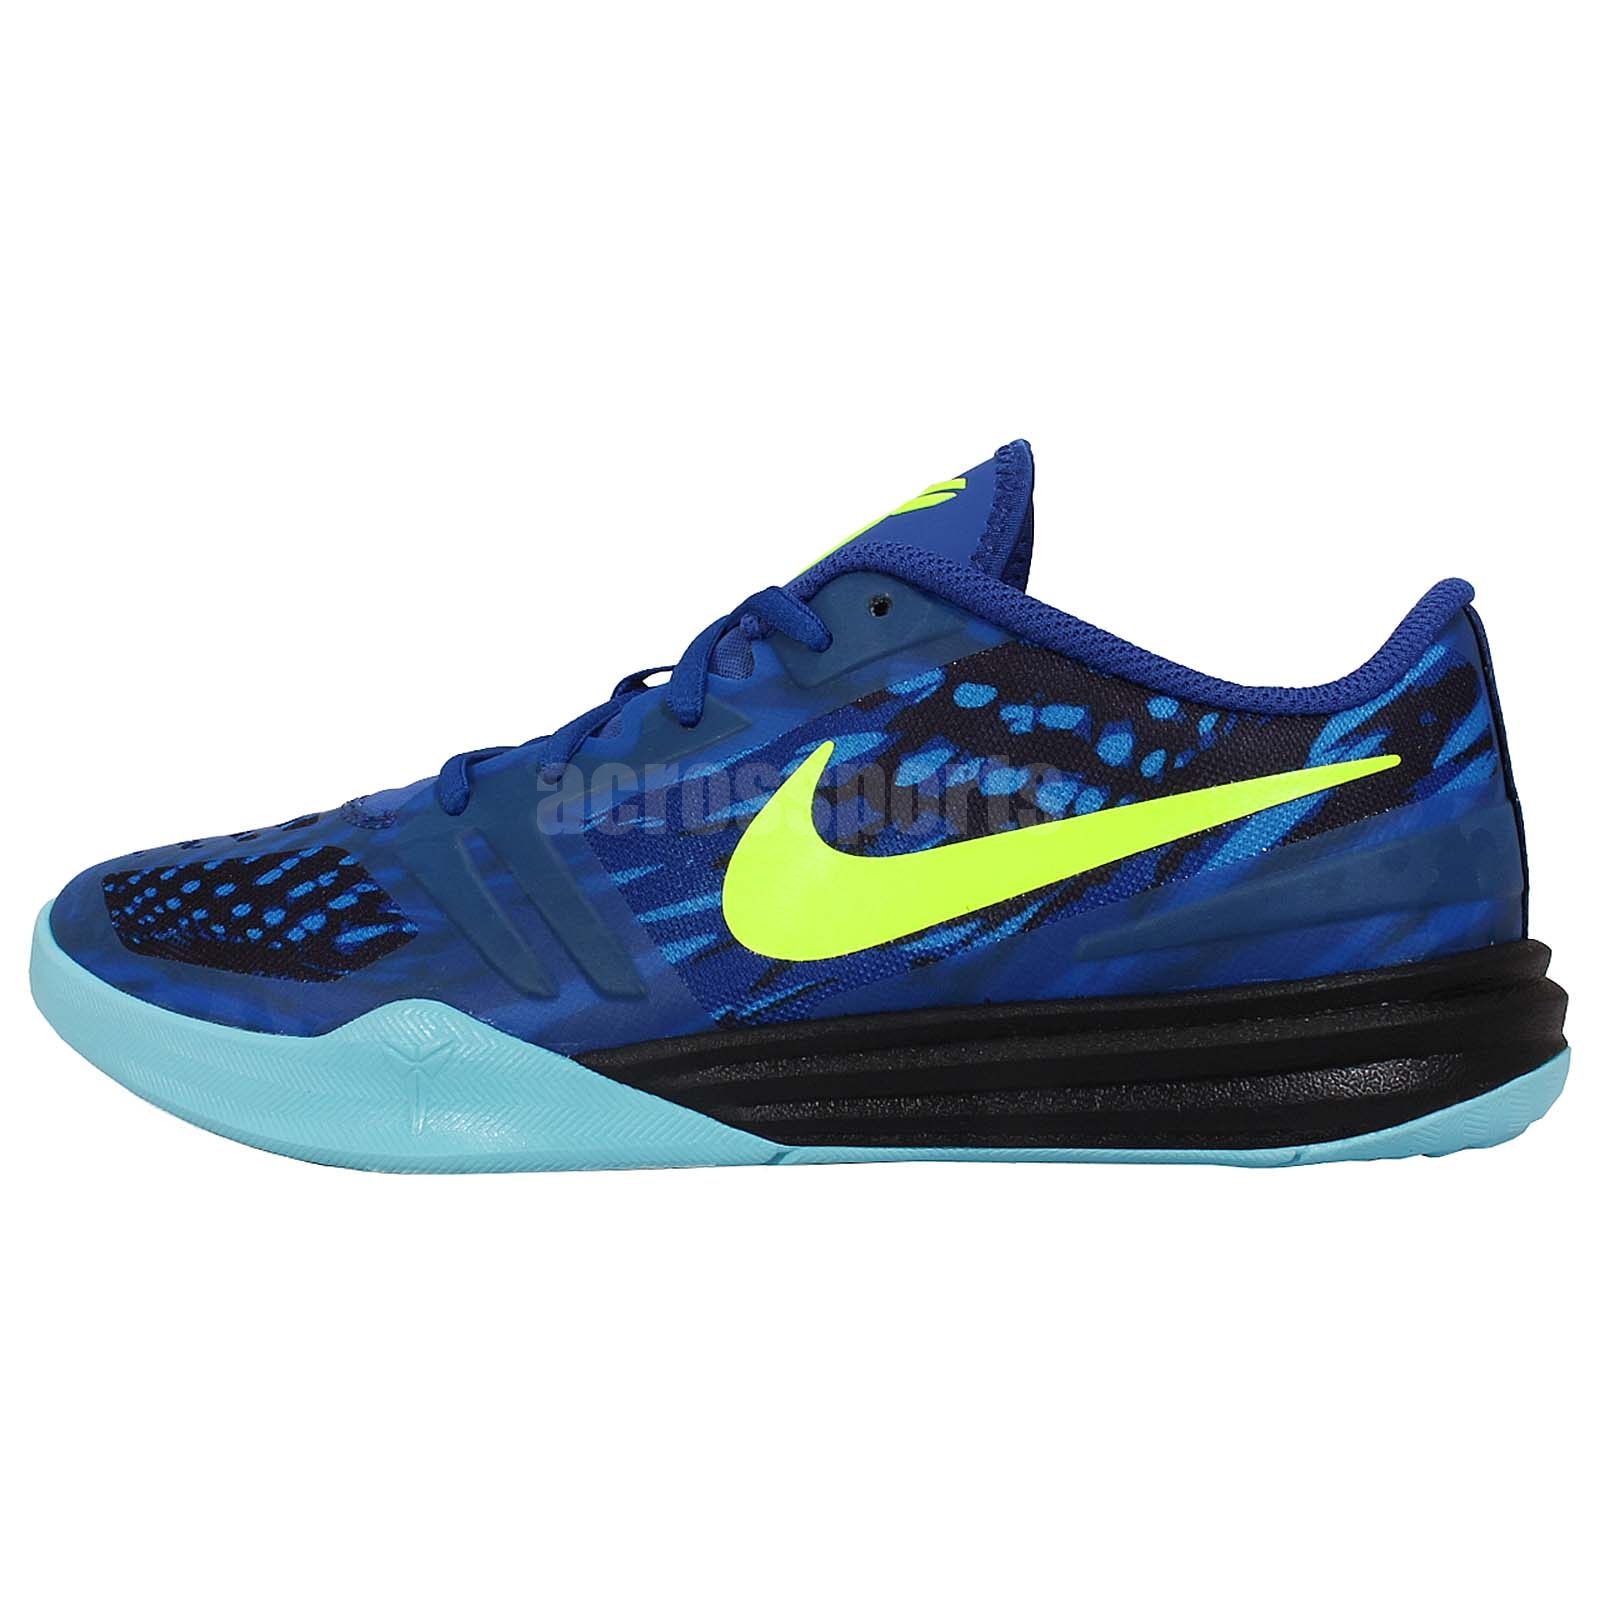 nike kb mentality gs blue volt youth boys basketball